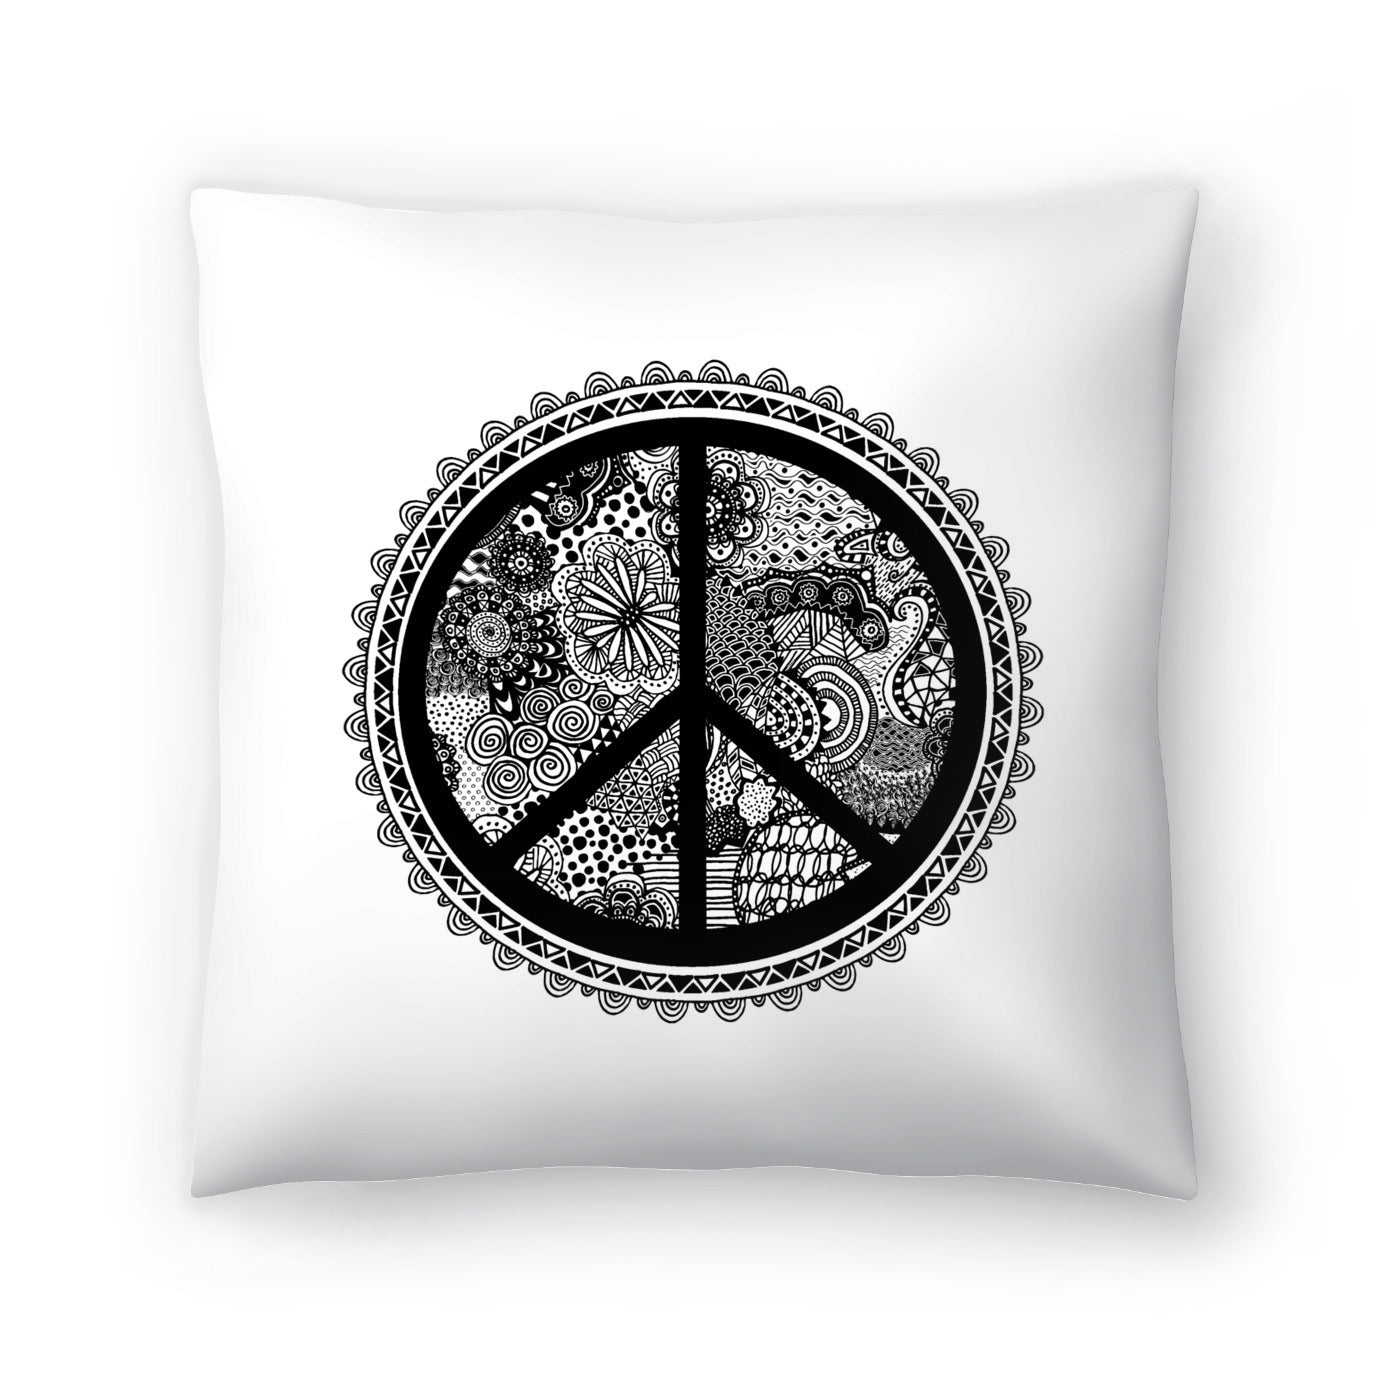 Doodle Peace Symbol 2 by Lebens Art Decorative Pillow - Decorative Pillow - Americanflat